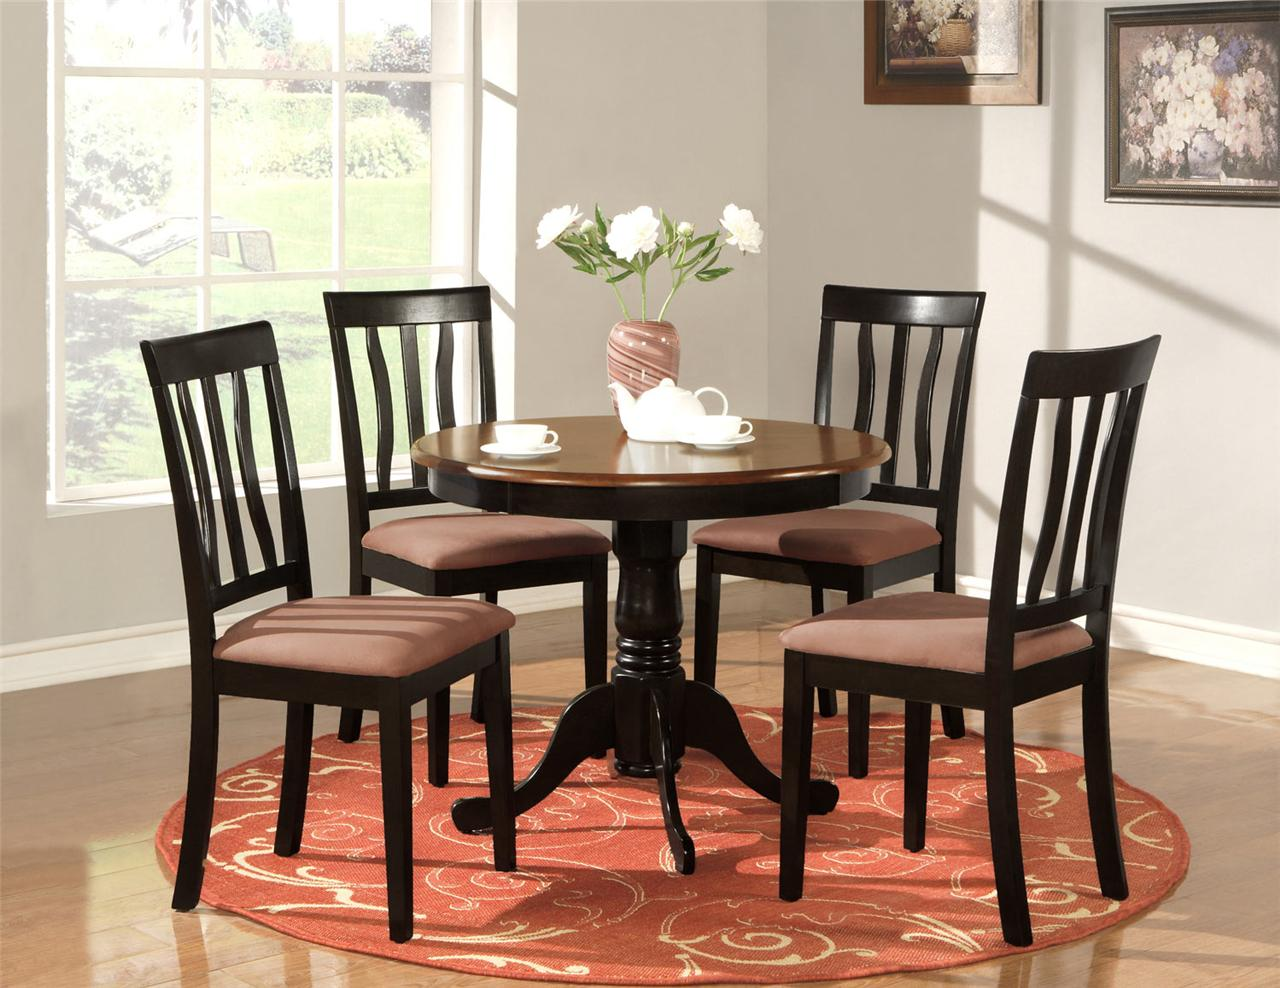 5 pc round table dinette kitchen table 4 chairs oak ebay for 4 kitchen table chairs